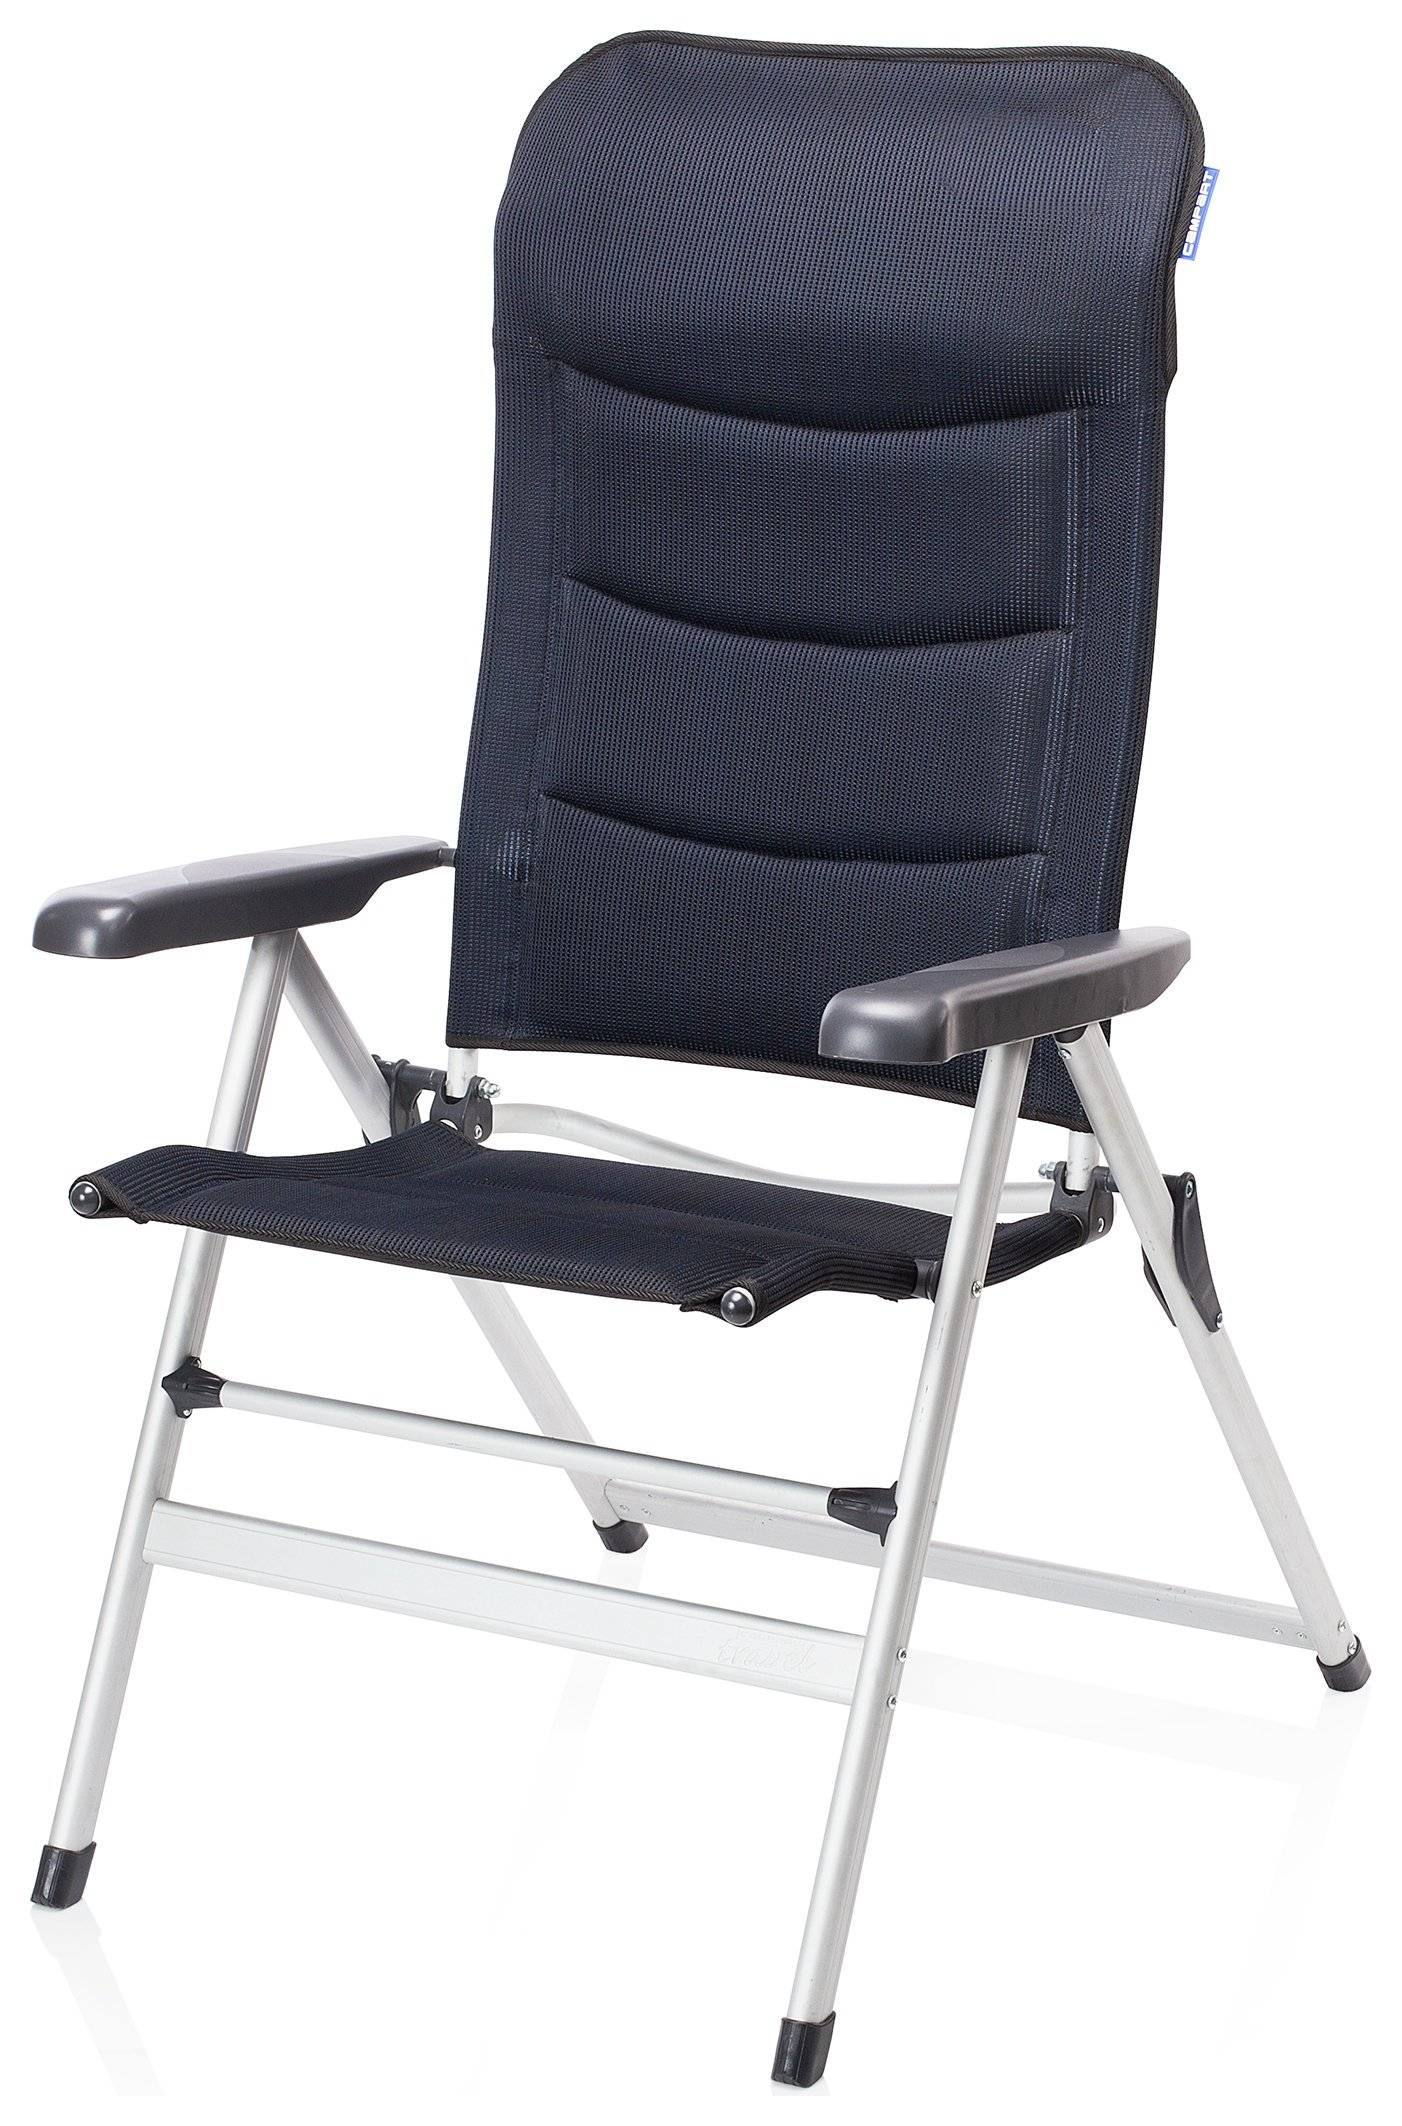 Image of Campart Travel Livorno Camping Chair